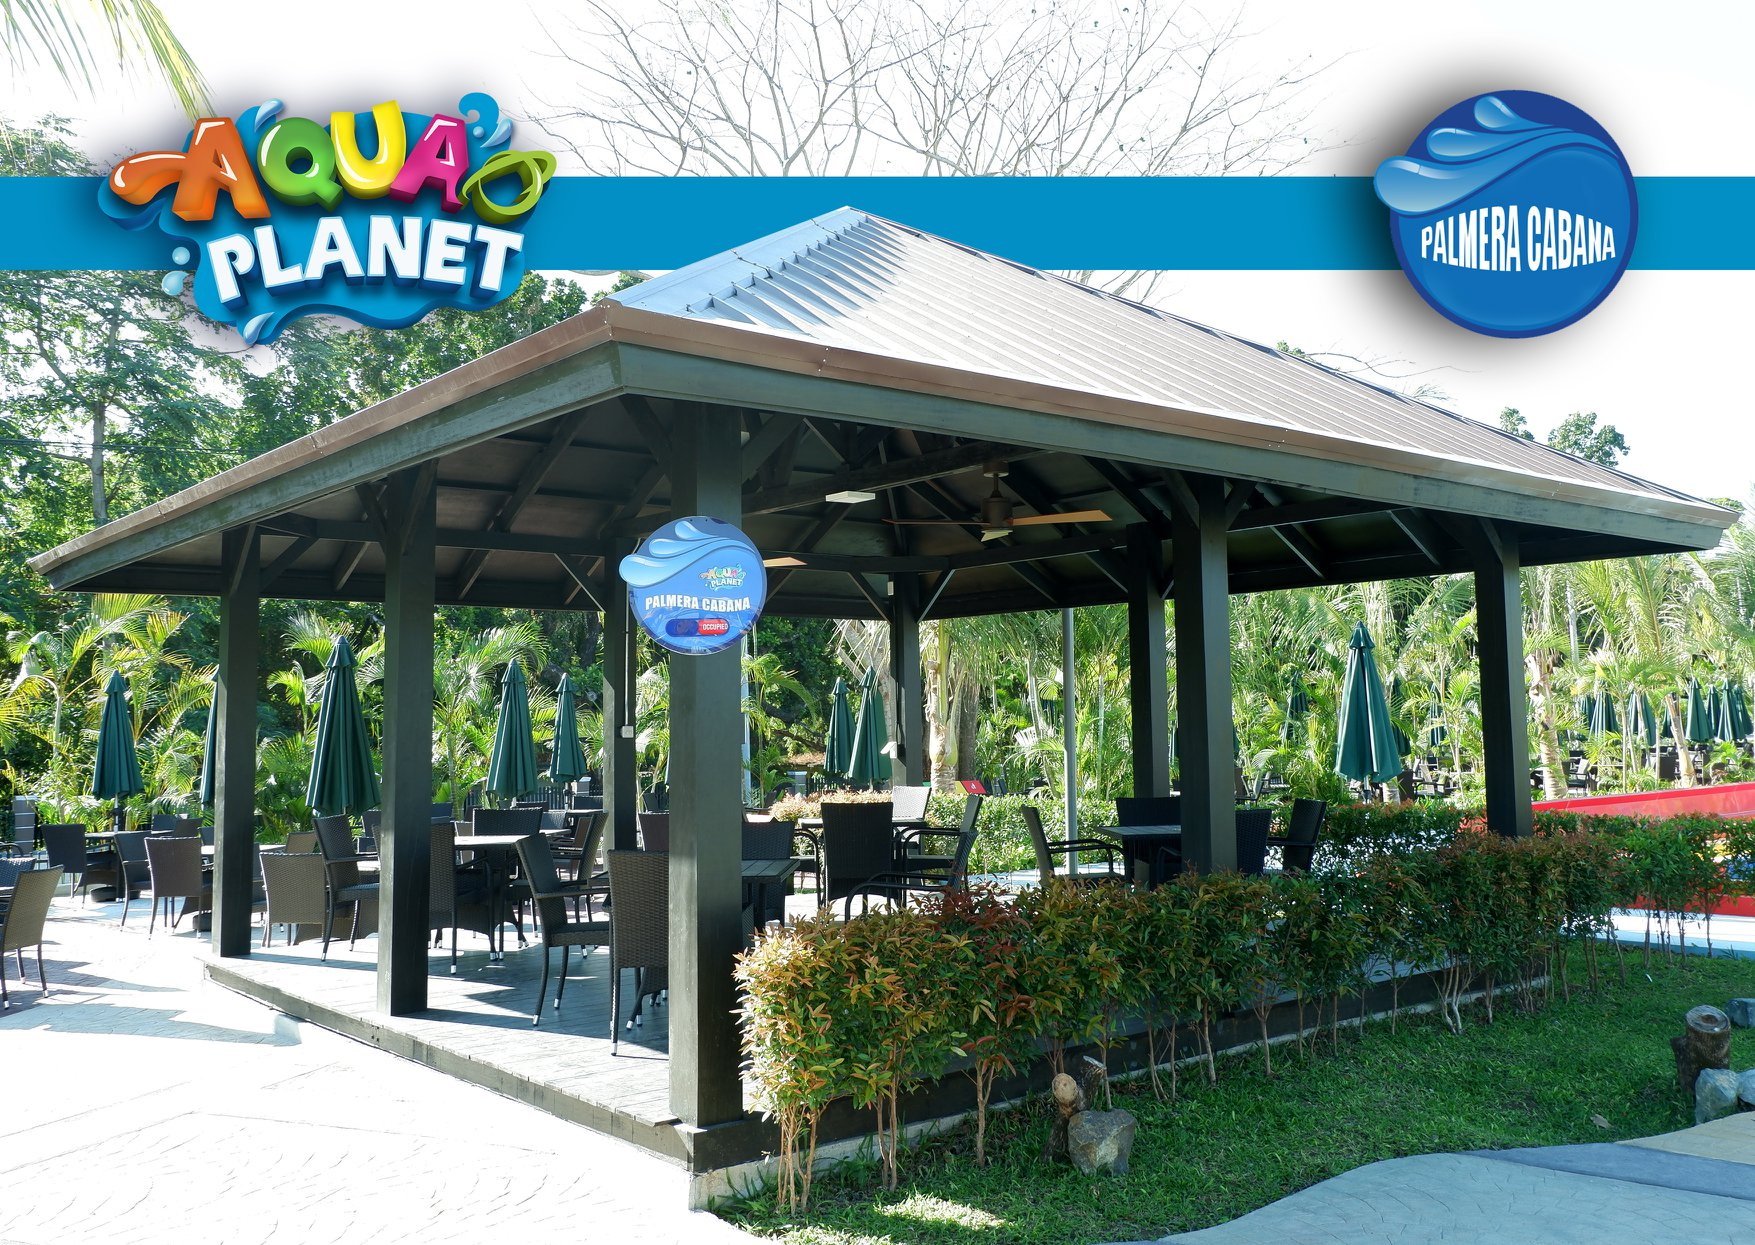 Palmera Cabana at Aqua Planet Clark, Pampanga. Image credit:  Aqua Planet Facebook Page